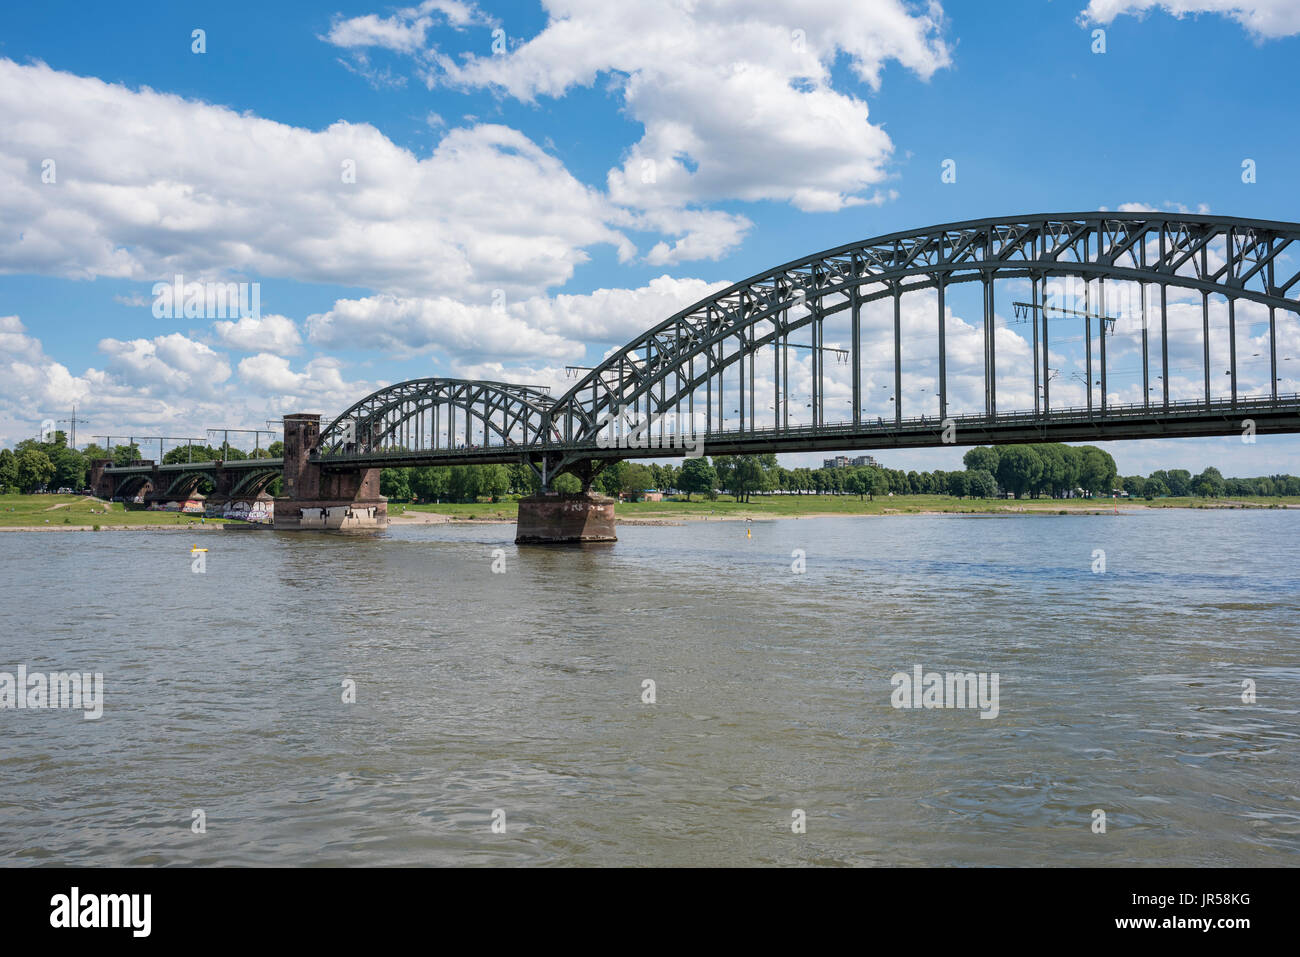 Südbrücke, connecting the city of Cologne with the district of Cologne-Deutz, Cologne, North Rhine-Westphalia, Germany - Stock Image